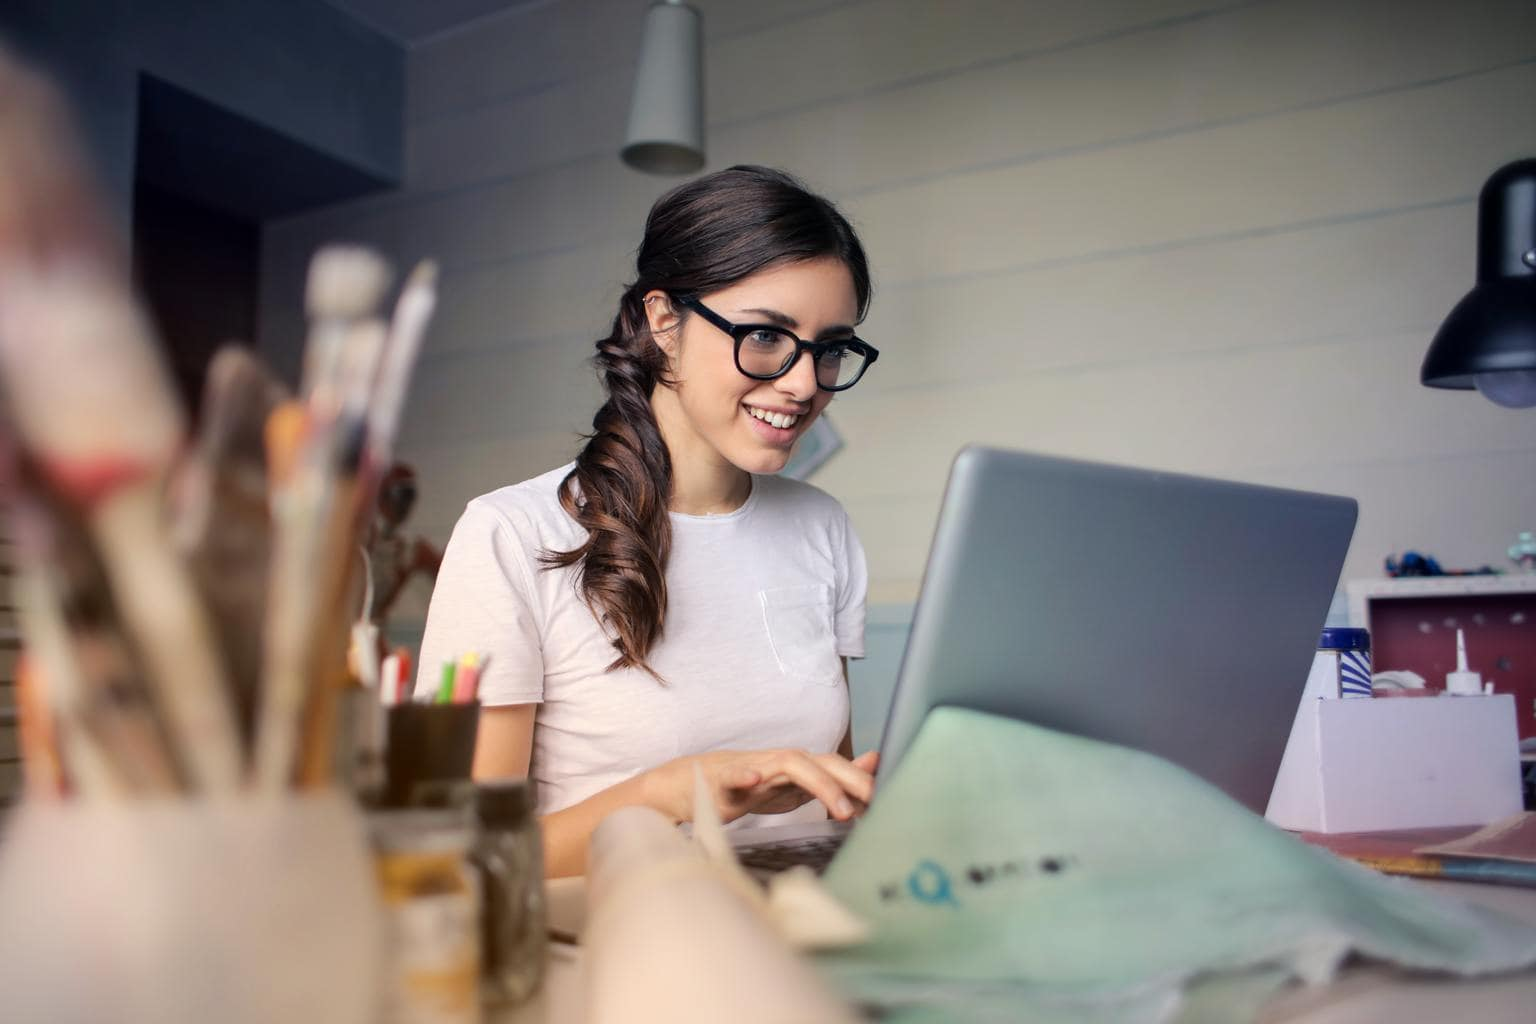 Photo of brunette girl with a ponytail and glasses using a computer.